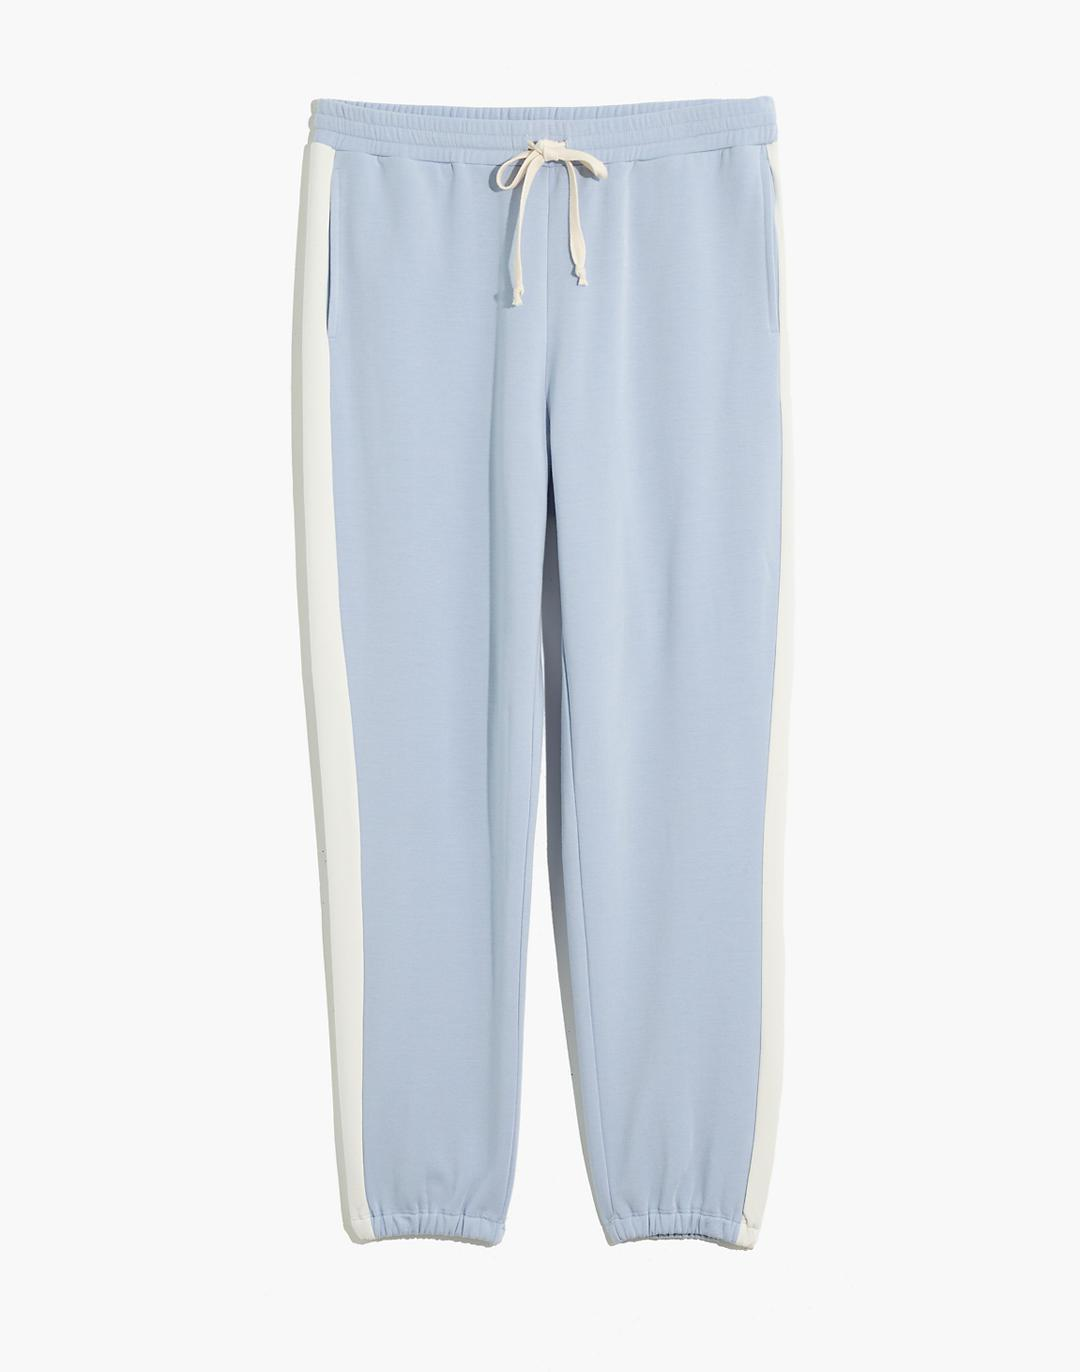 MWL Superbrushed Inset Easygoing Sweatpants 4